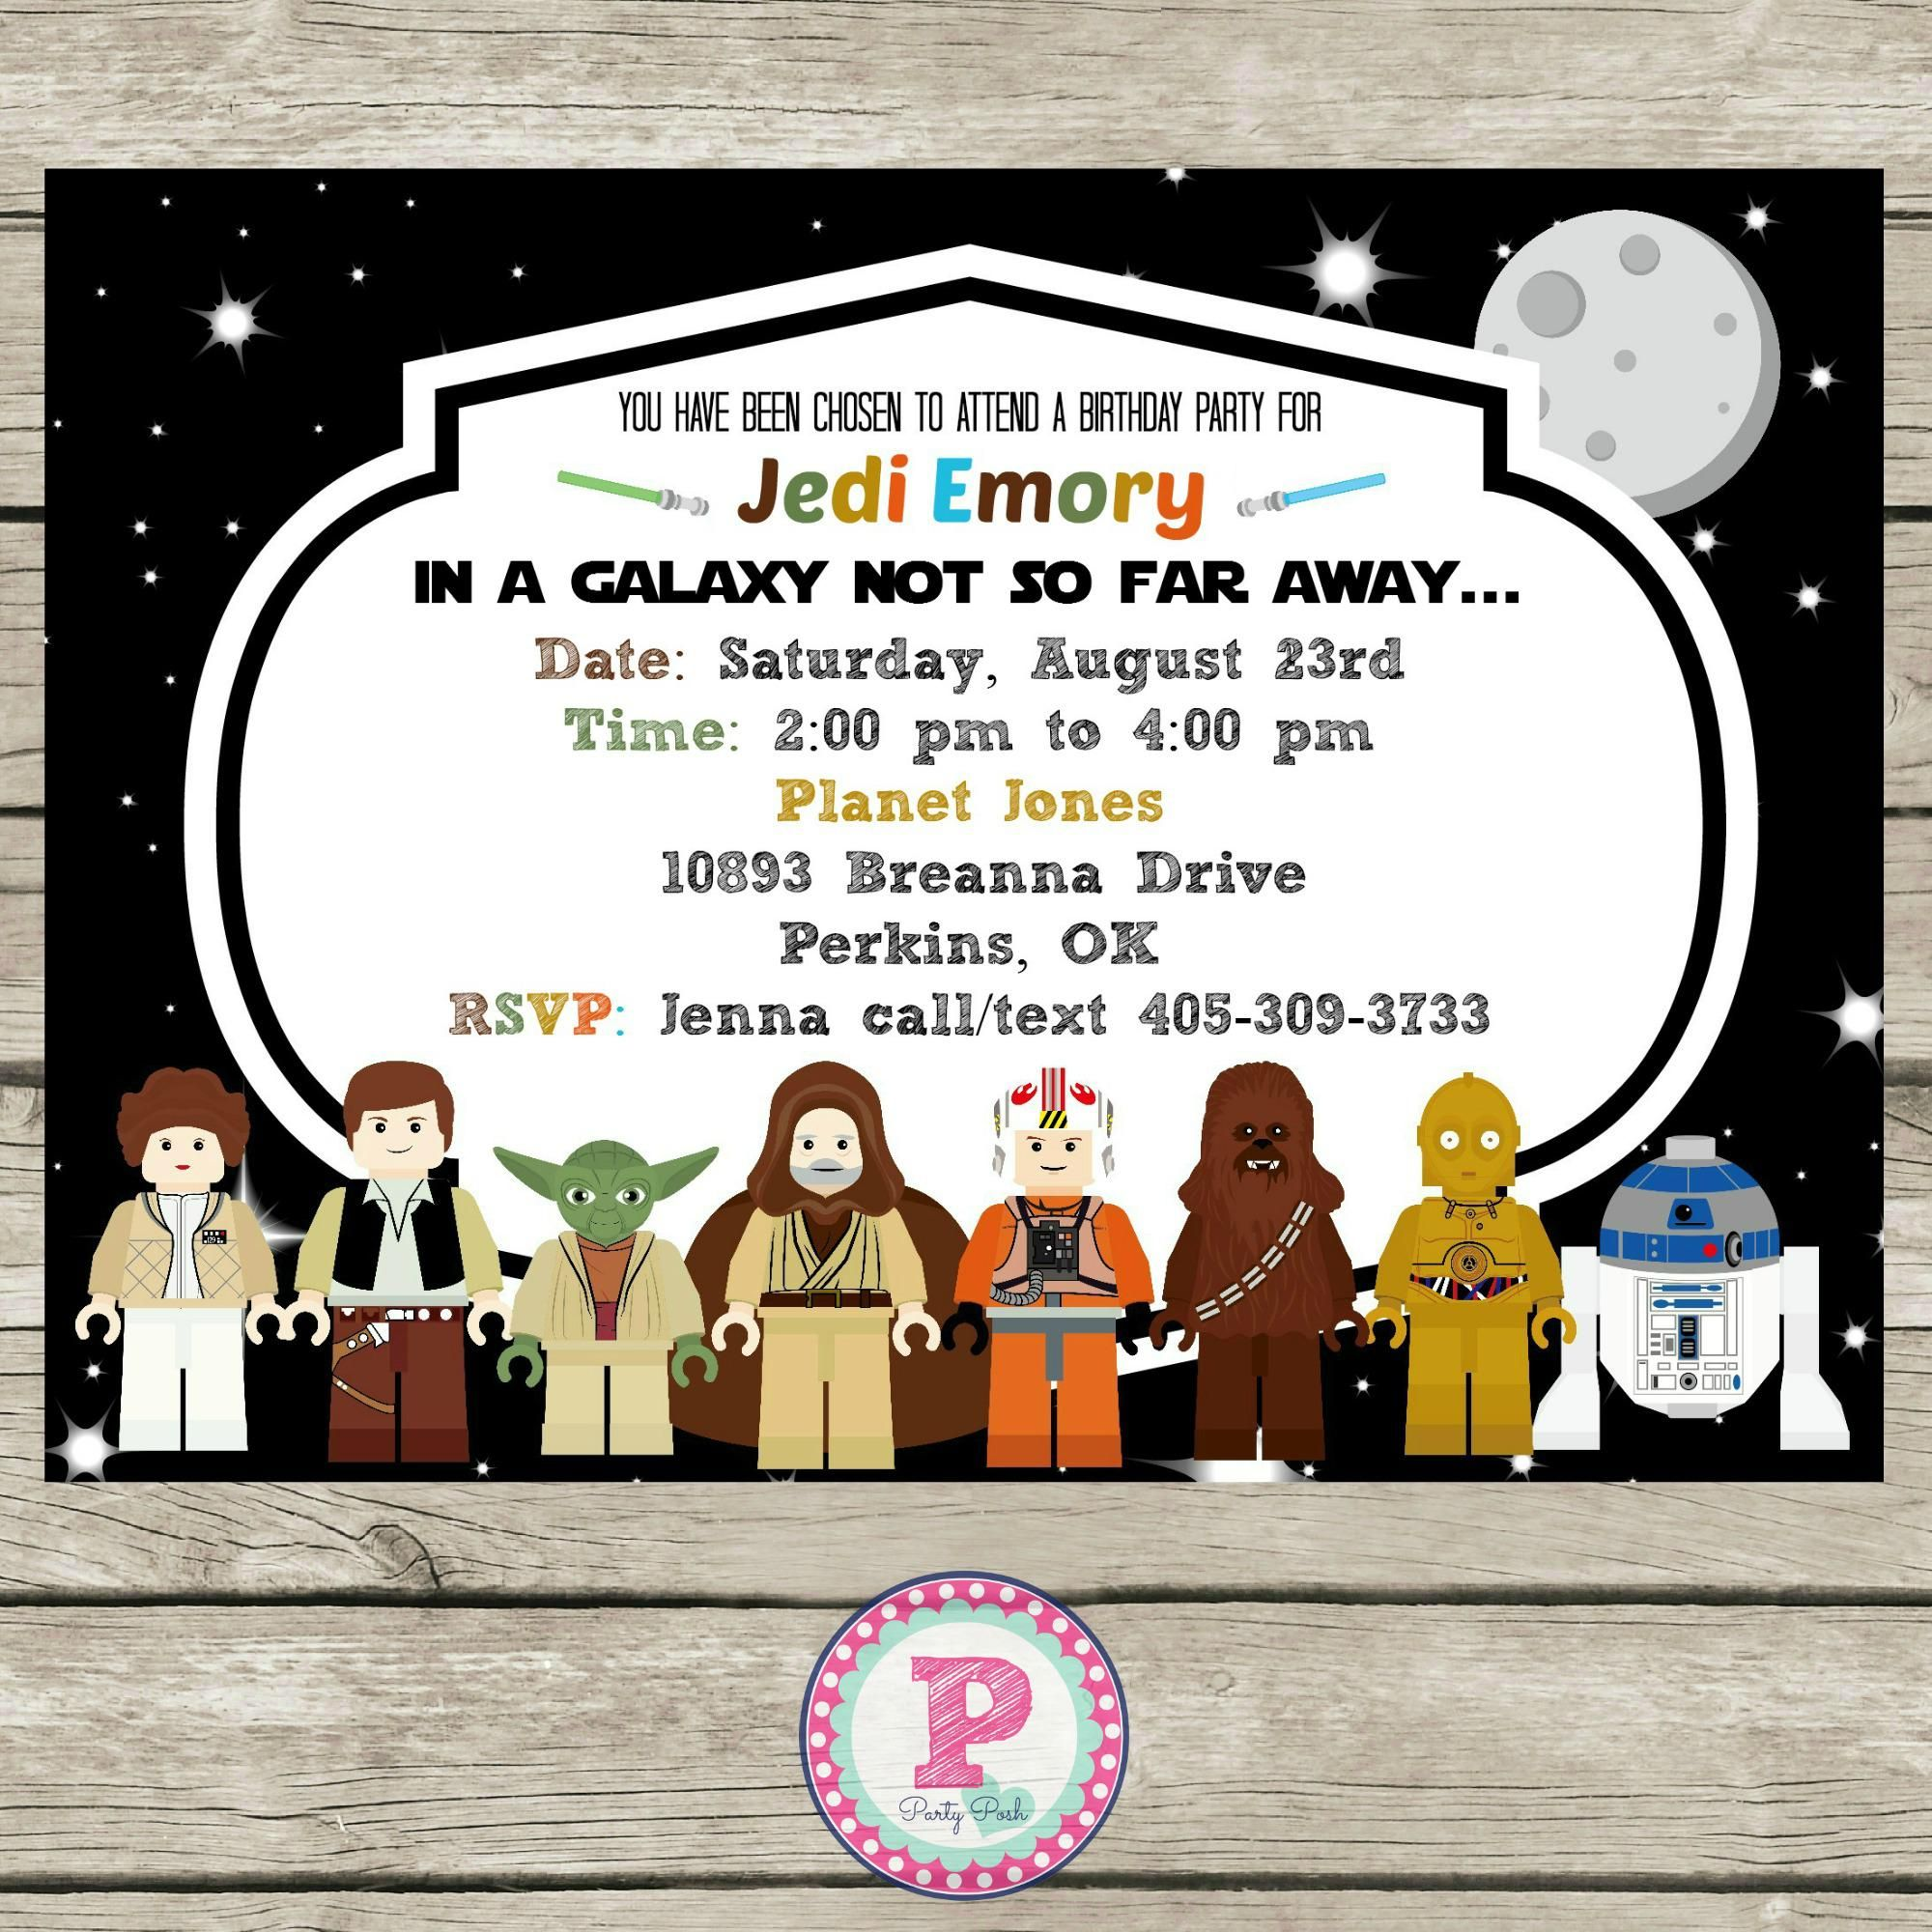 Star Wars Party Invitations Online Lego Geburtstagseinladungen Geburtstagsparty Geburtstag